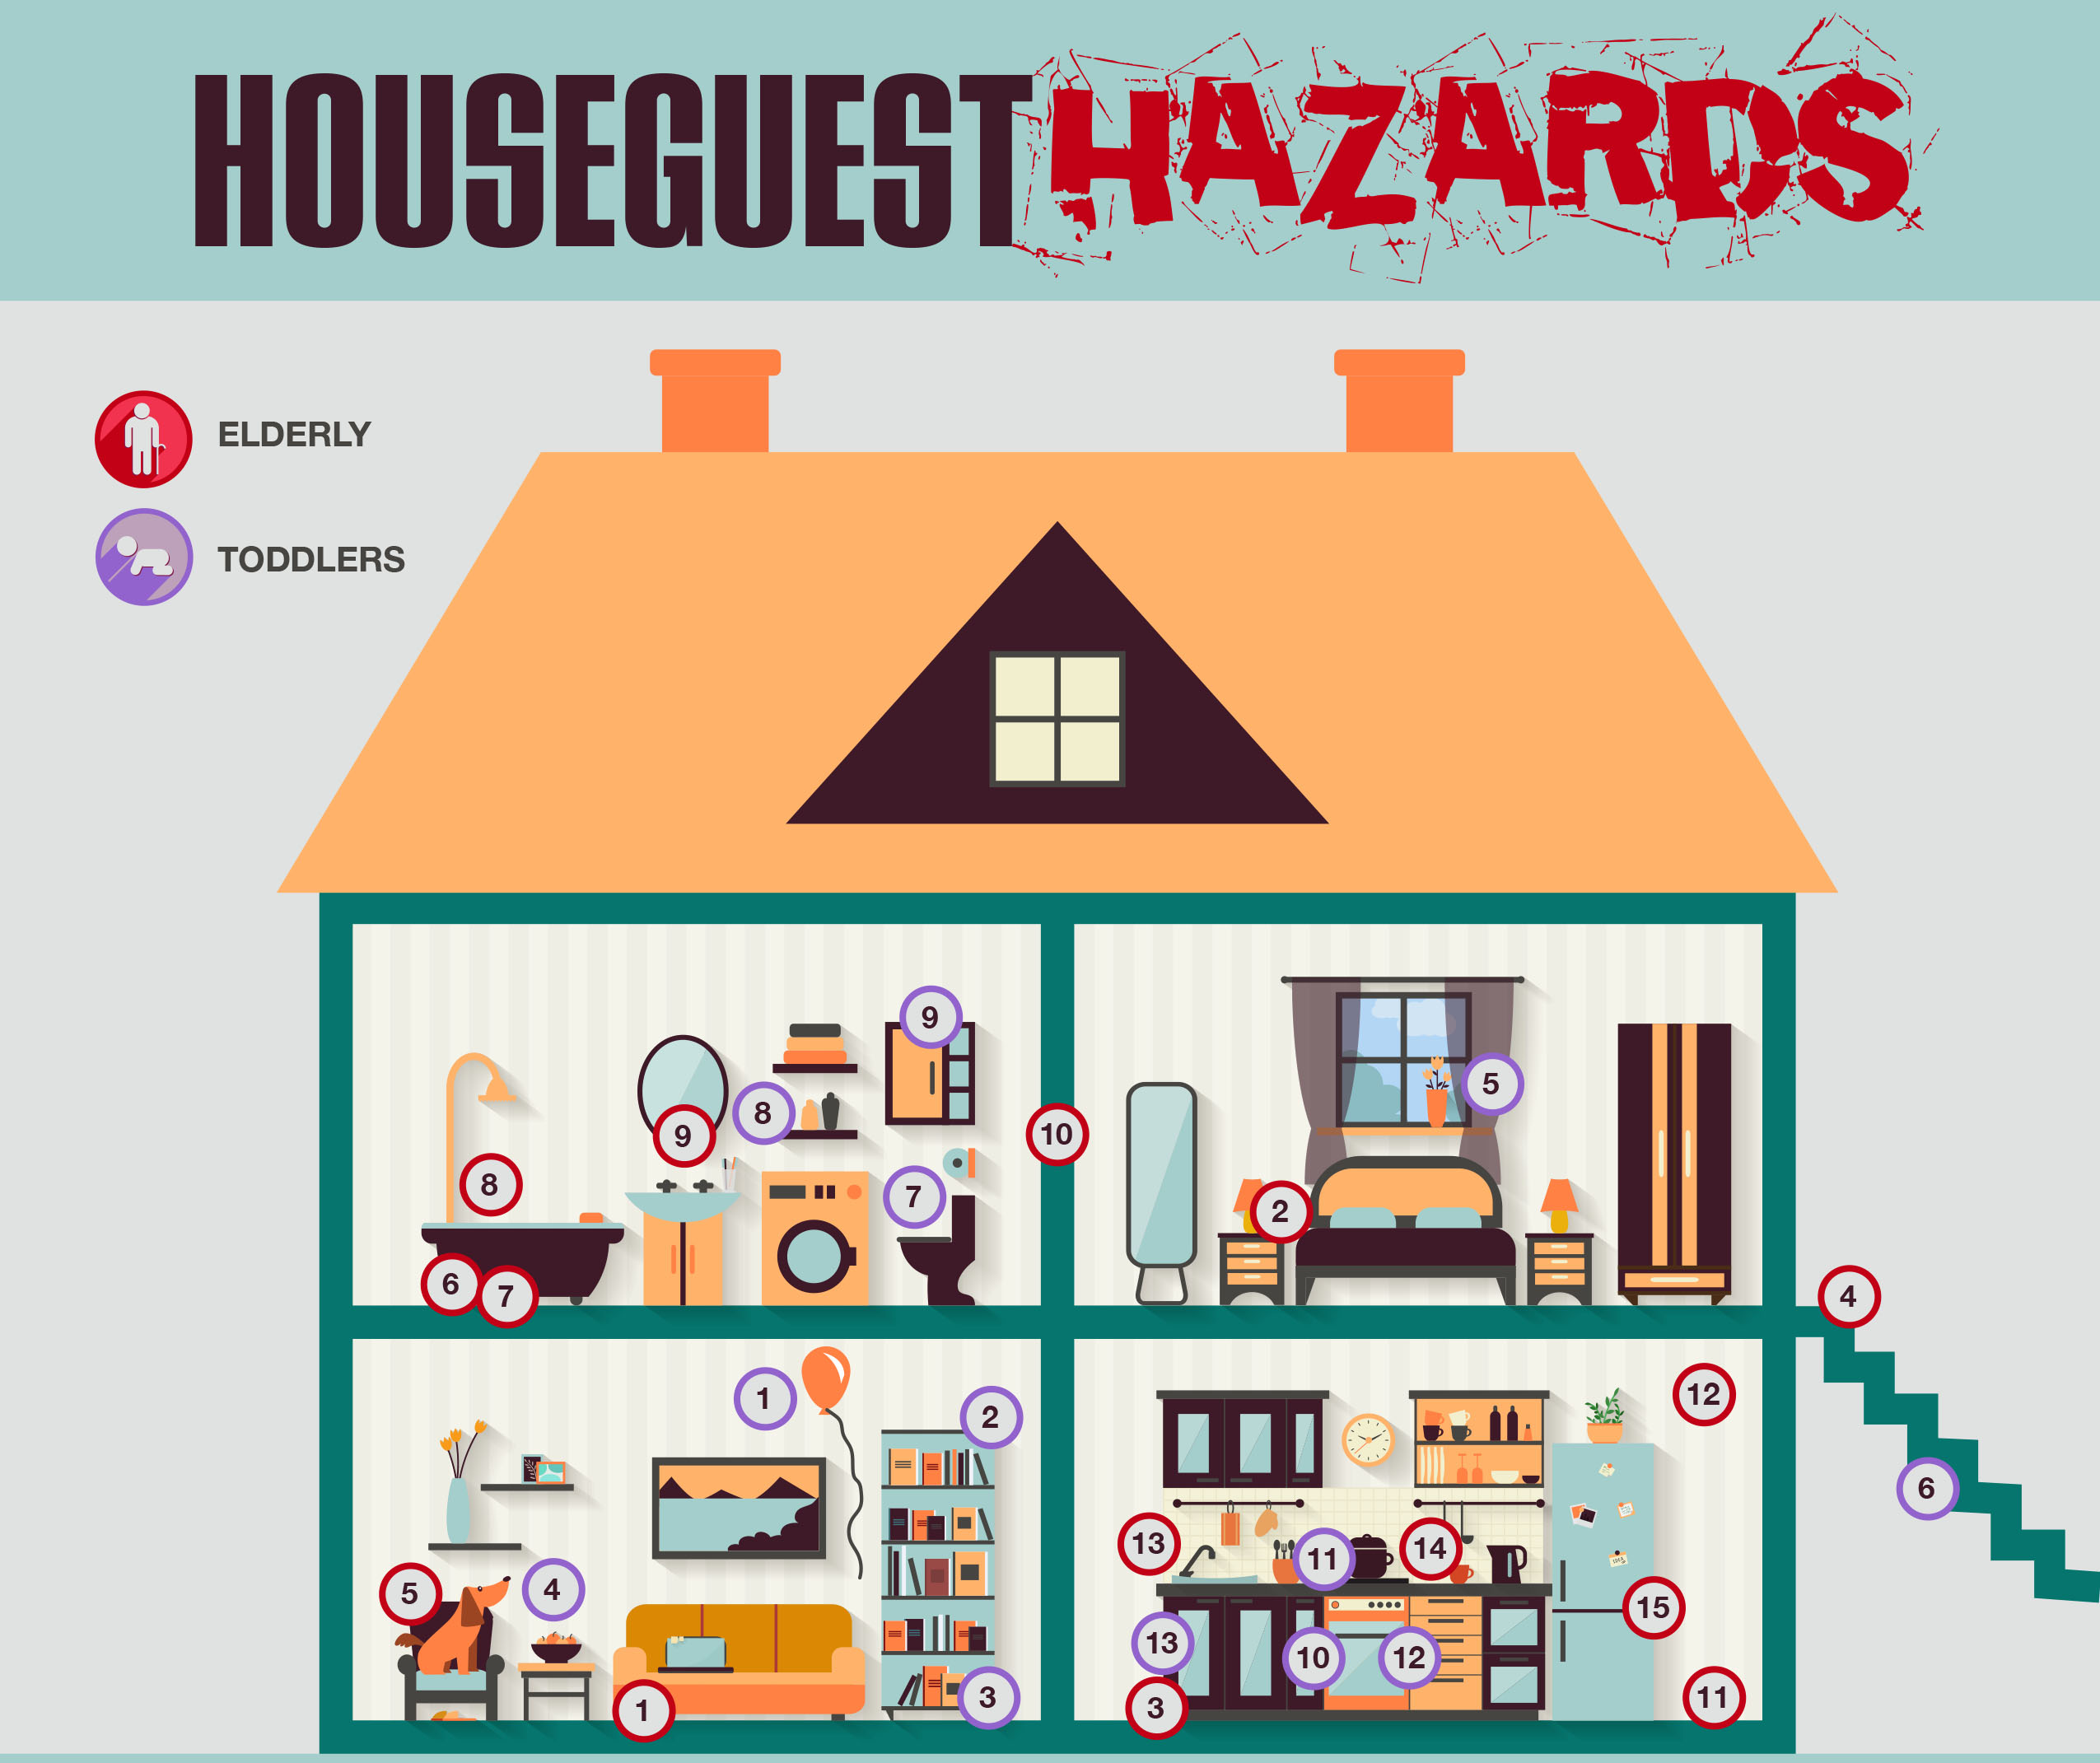 Safety For House Guests Around The Holidays